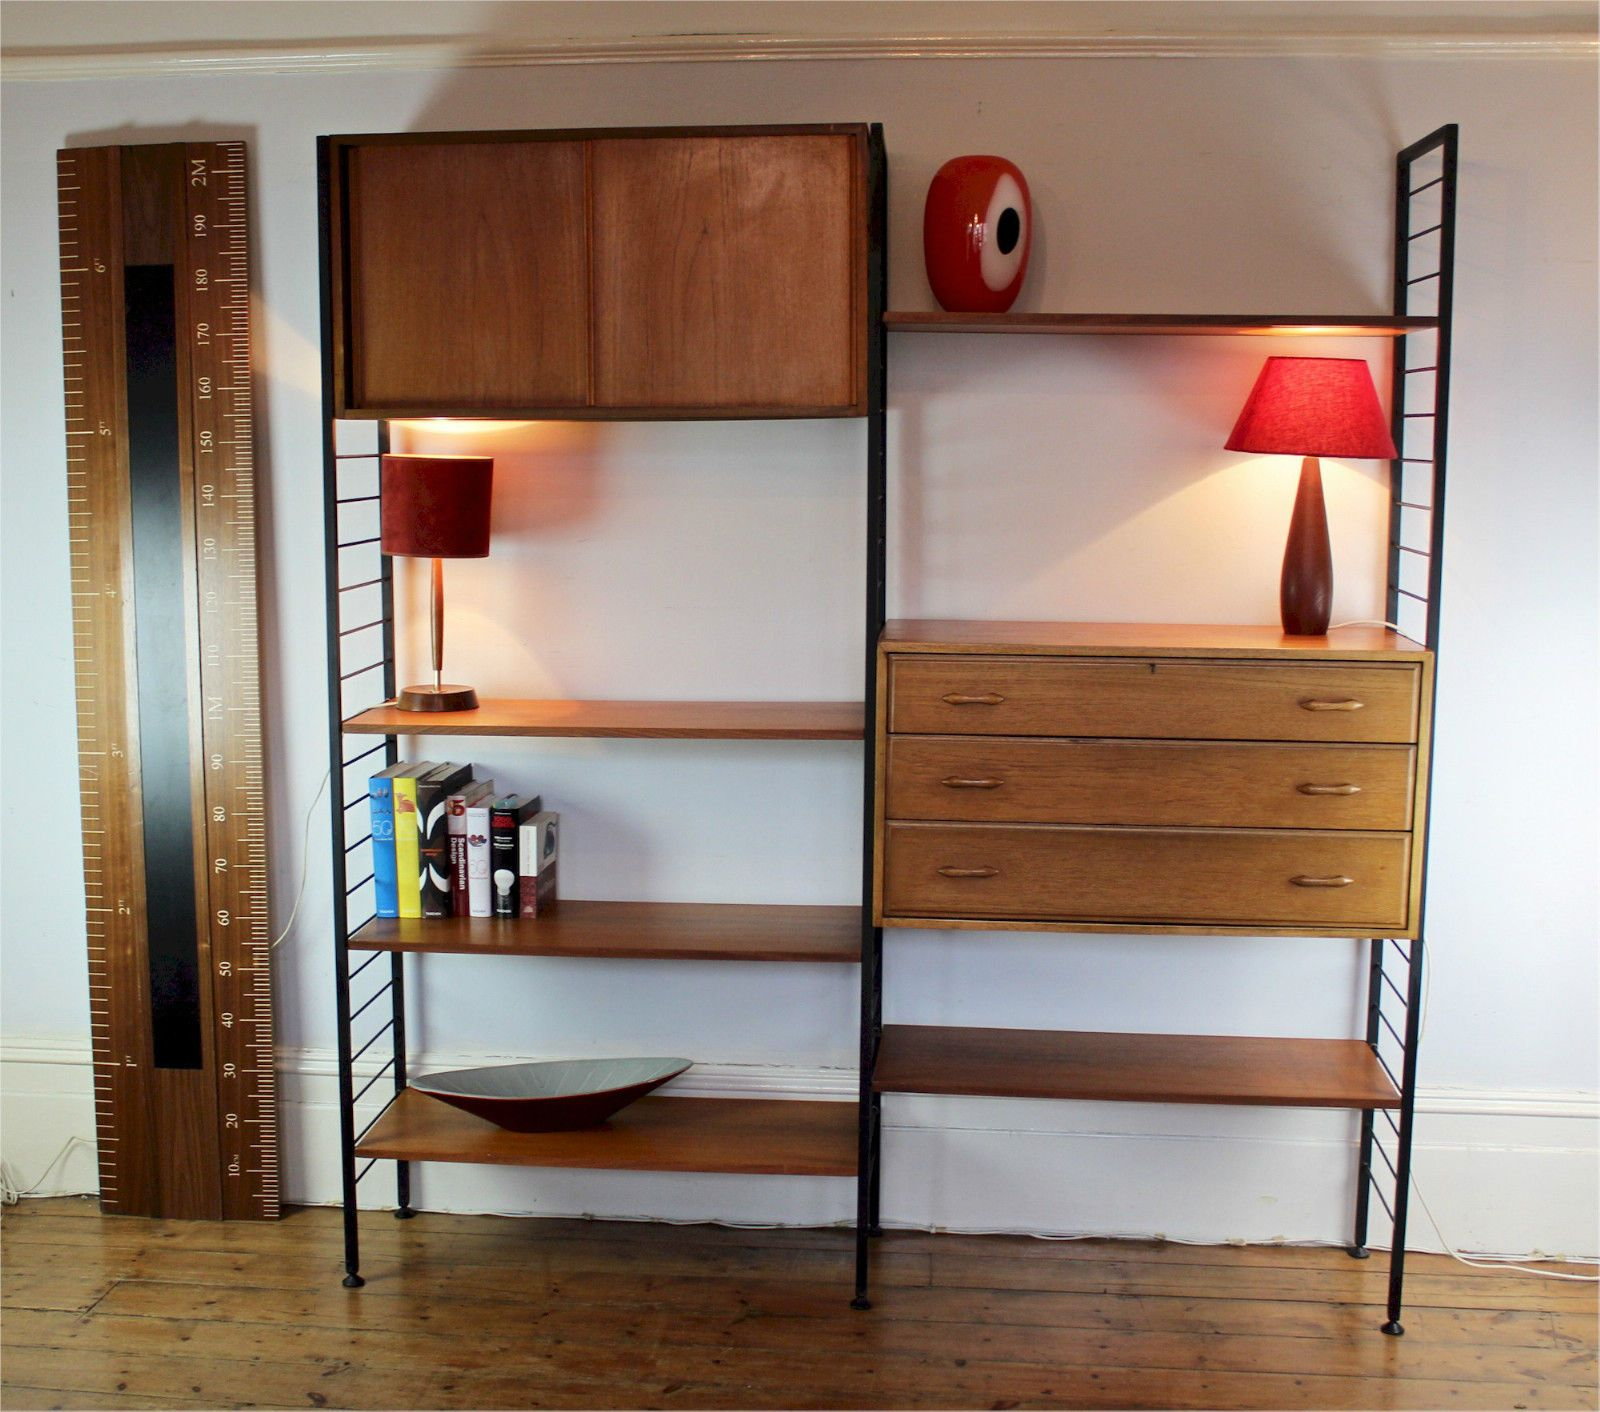 Ladderax Shelving System, 695 Office Guest Roomsshelving Systemsshelvesmid Centuryfurnitureshelvingmedievalshelving